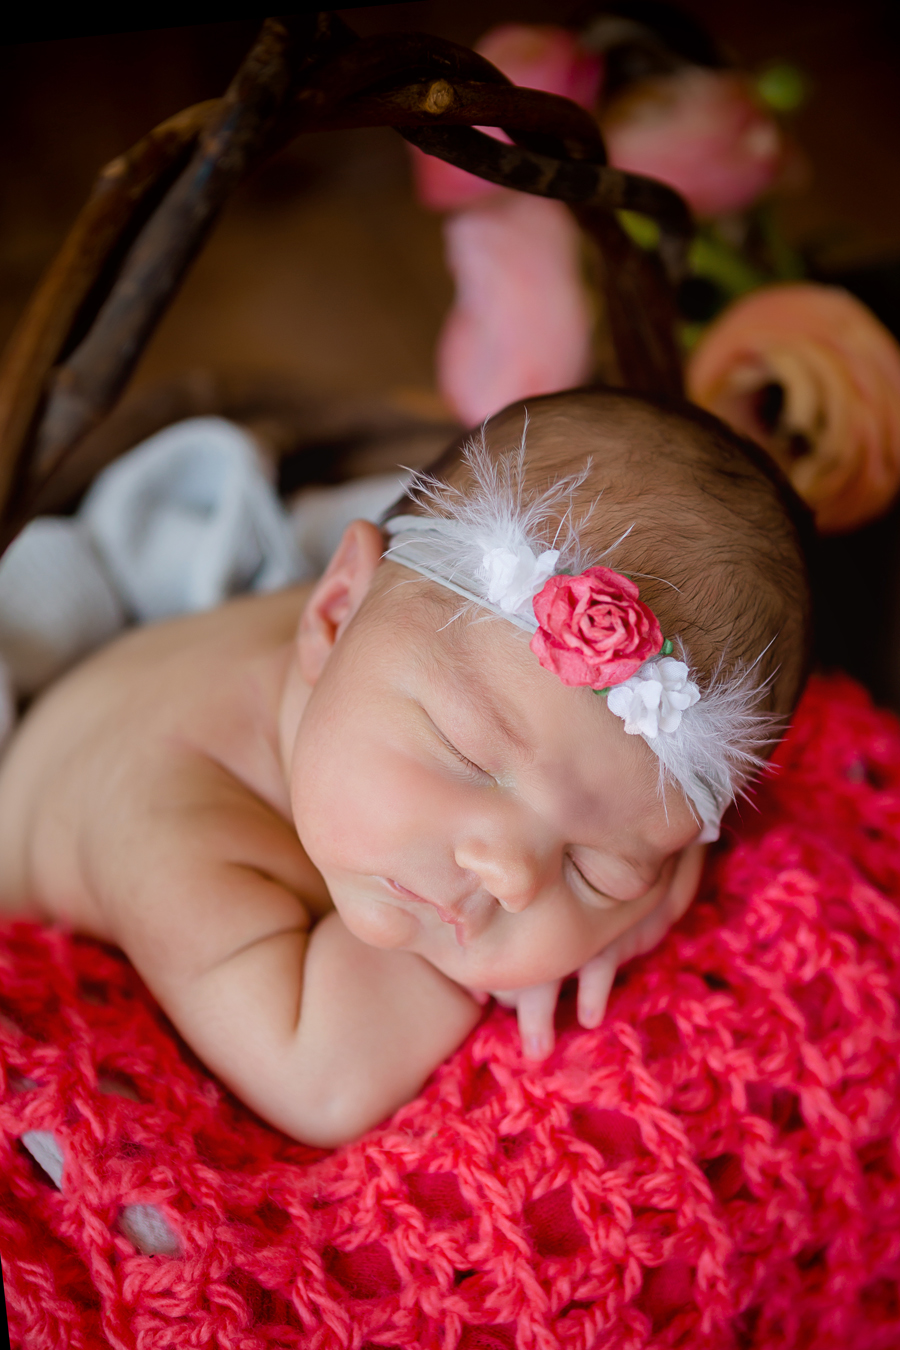 GrandRapidsnewbornphotographer23.jpg